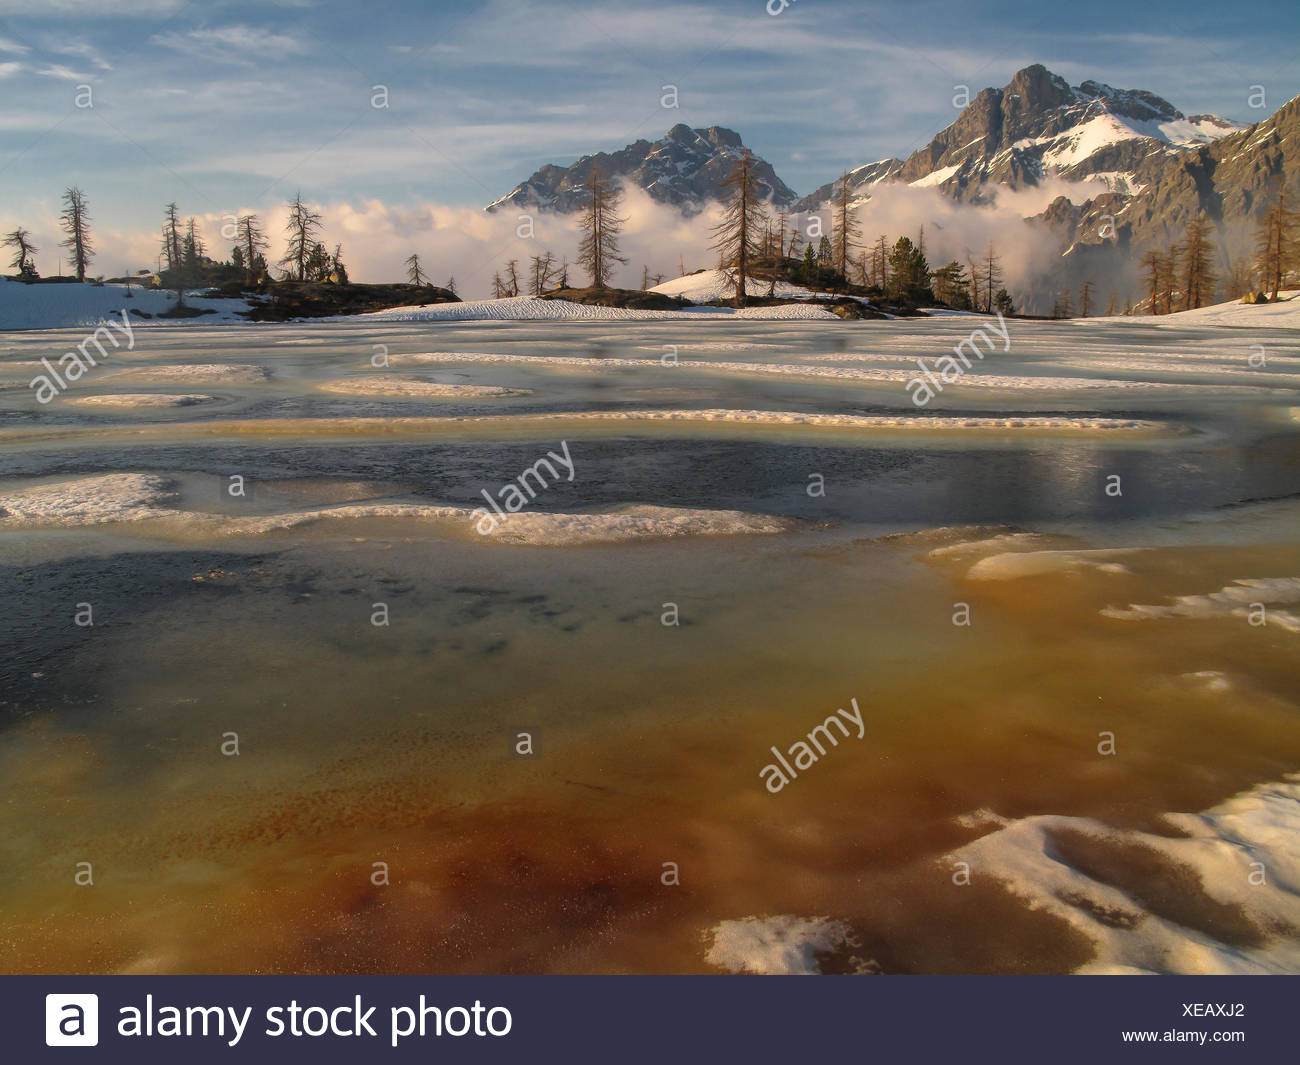 Vallette lake in sping, melting snow and ice, red algae on the ice, Mont Avic Natural Park, Aosta Valley, Italy - Stock Image